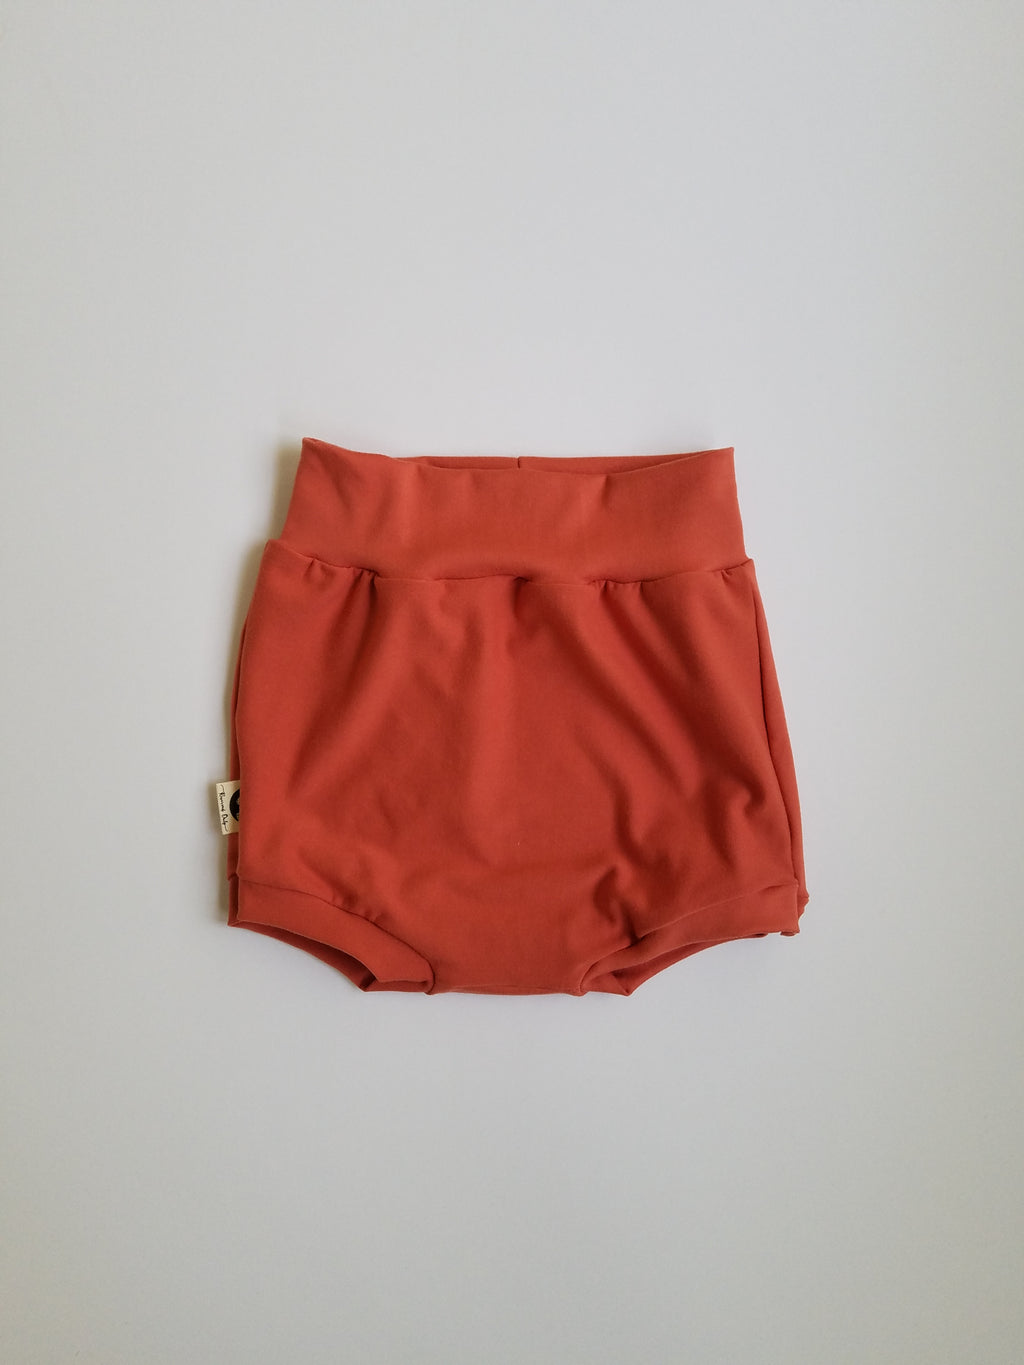 DIAPER COVER | BUMMIES - SOLIDS - CORAL